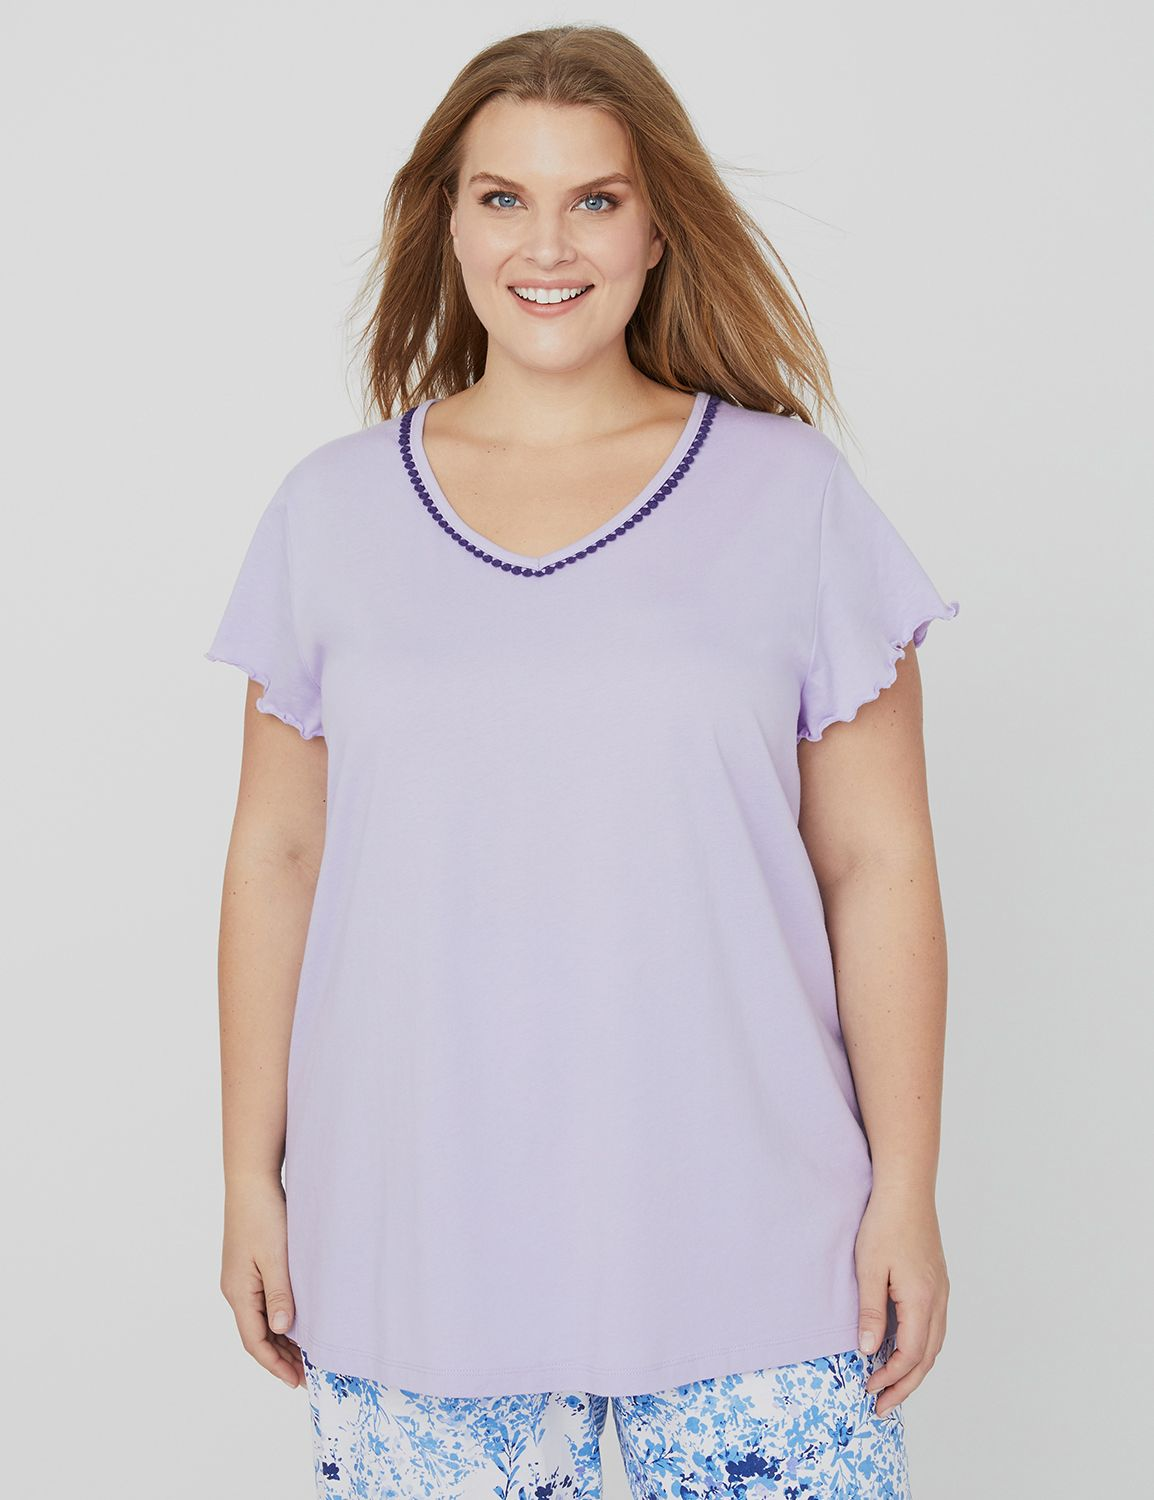 All The Details Sleep Tee 1088483- Ruffle Sleeve Tee w/ pom p MP-300096231